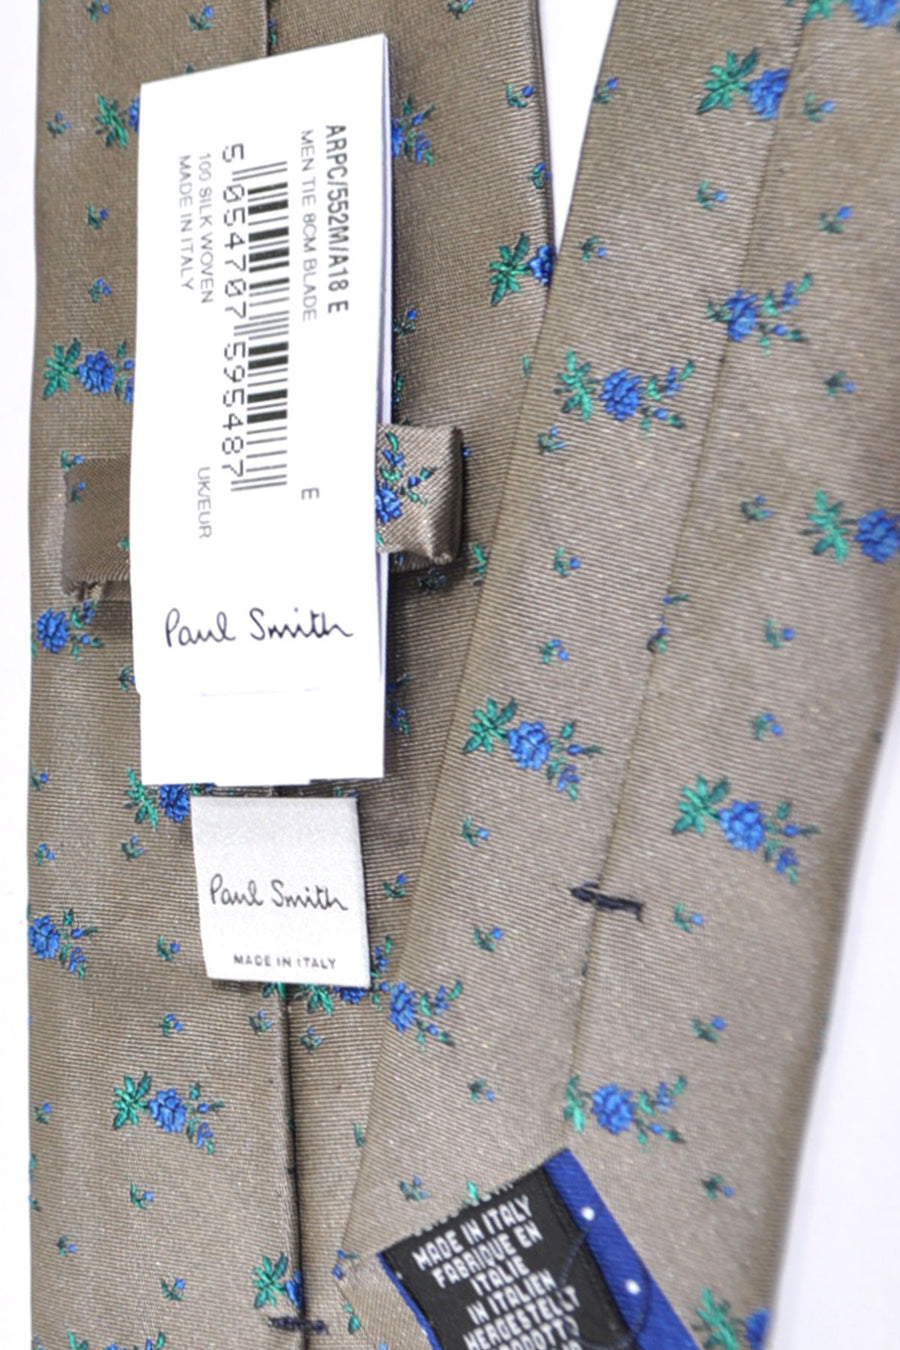 Paul Smith Tie Taupe Royal Blue Green Floral Print